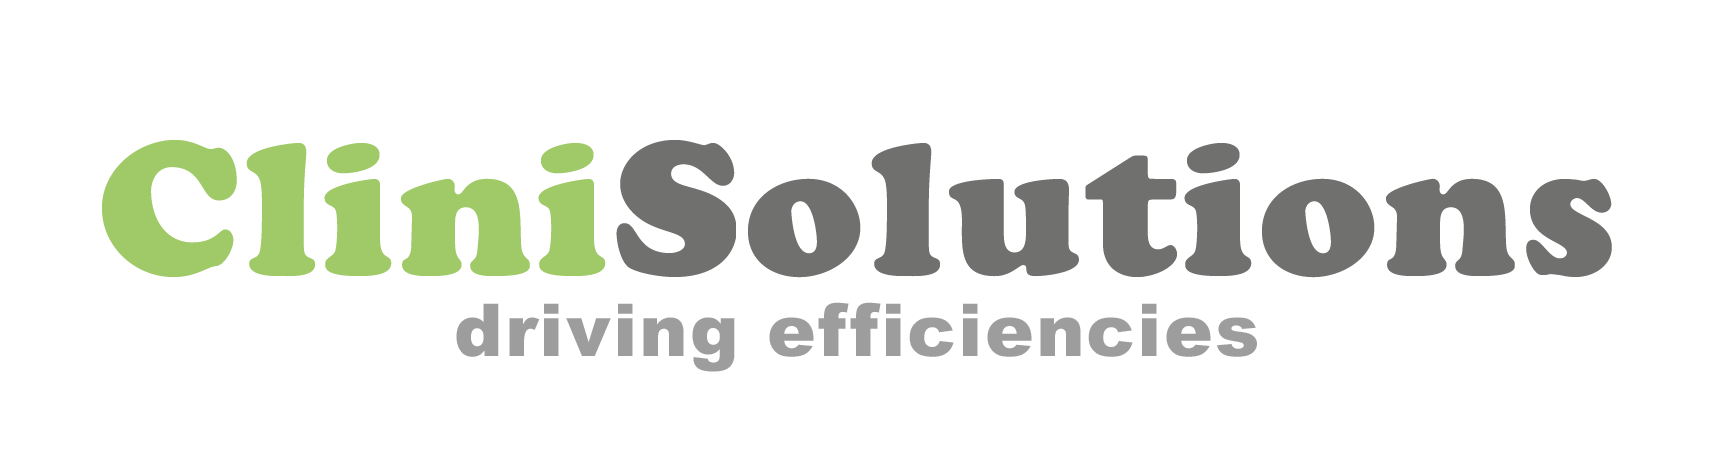 Clinisolutions-logo REVC